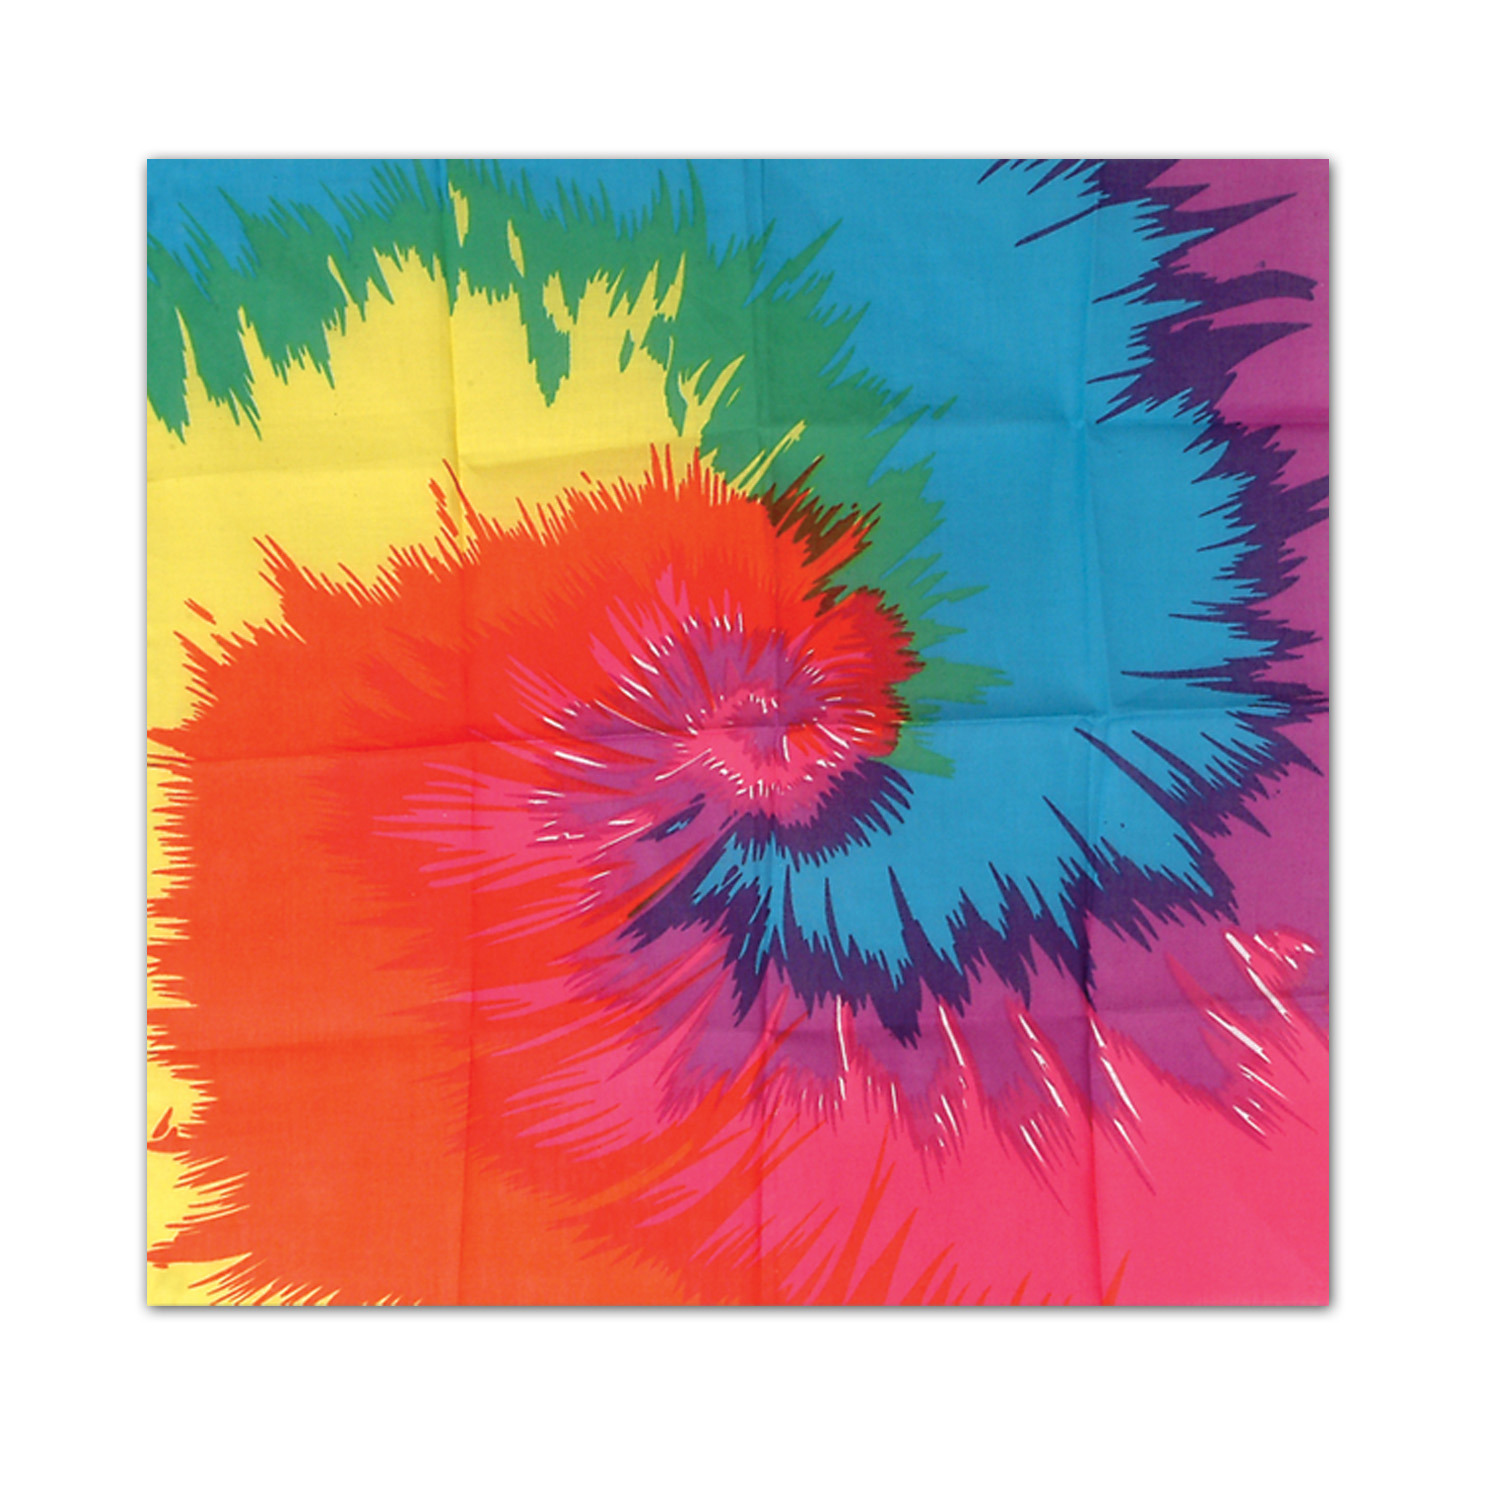 Funky Tie-Dyed Bandana (Pack of 12) Funky Tie-Dyed Bandana, decoration, party favor, 60s, 1960s, new years eve, halloween, wholesale, inexpensive, bulk